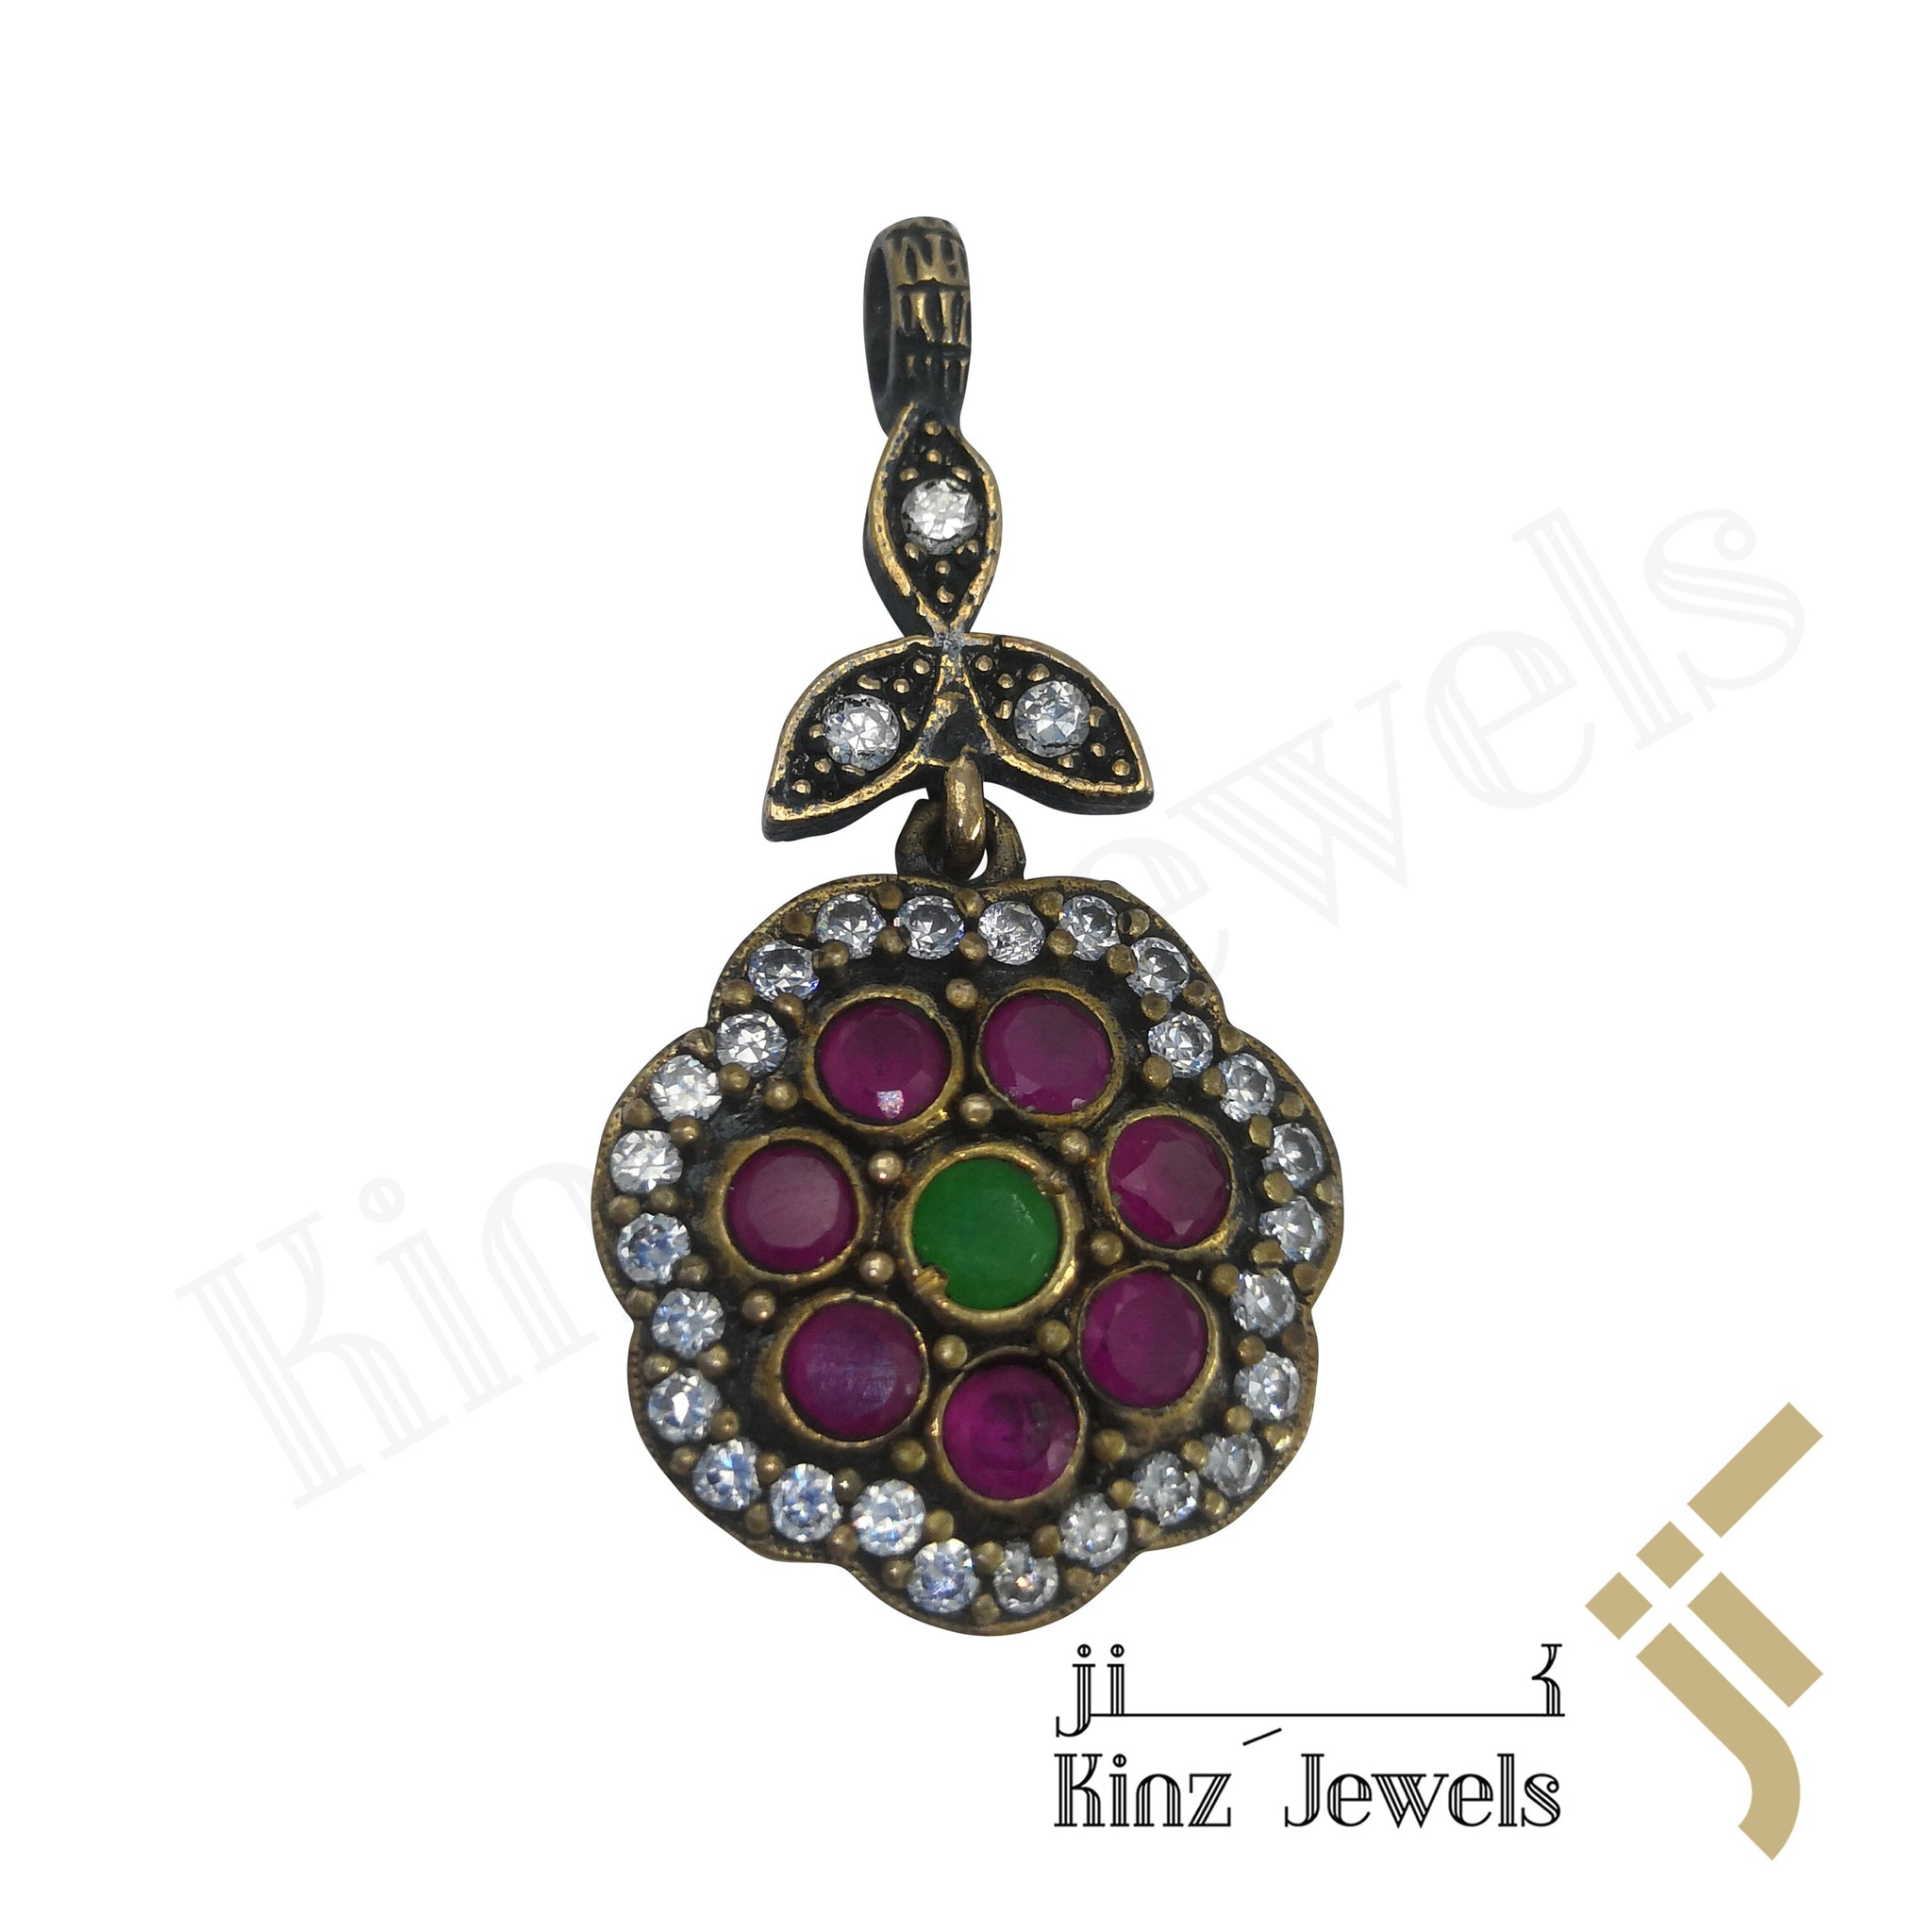 kinzjewels - Sterling Silver Hurrem Sultan Flower Gemstones Pendant